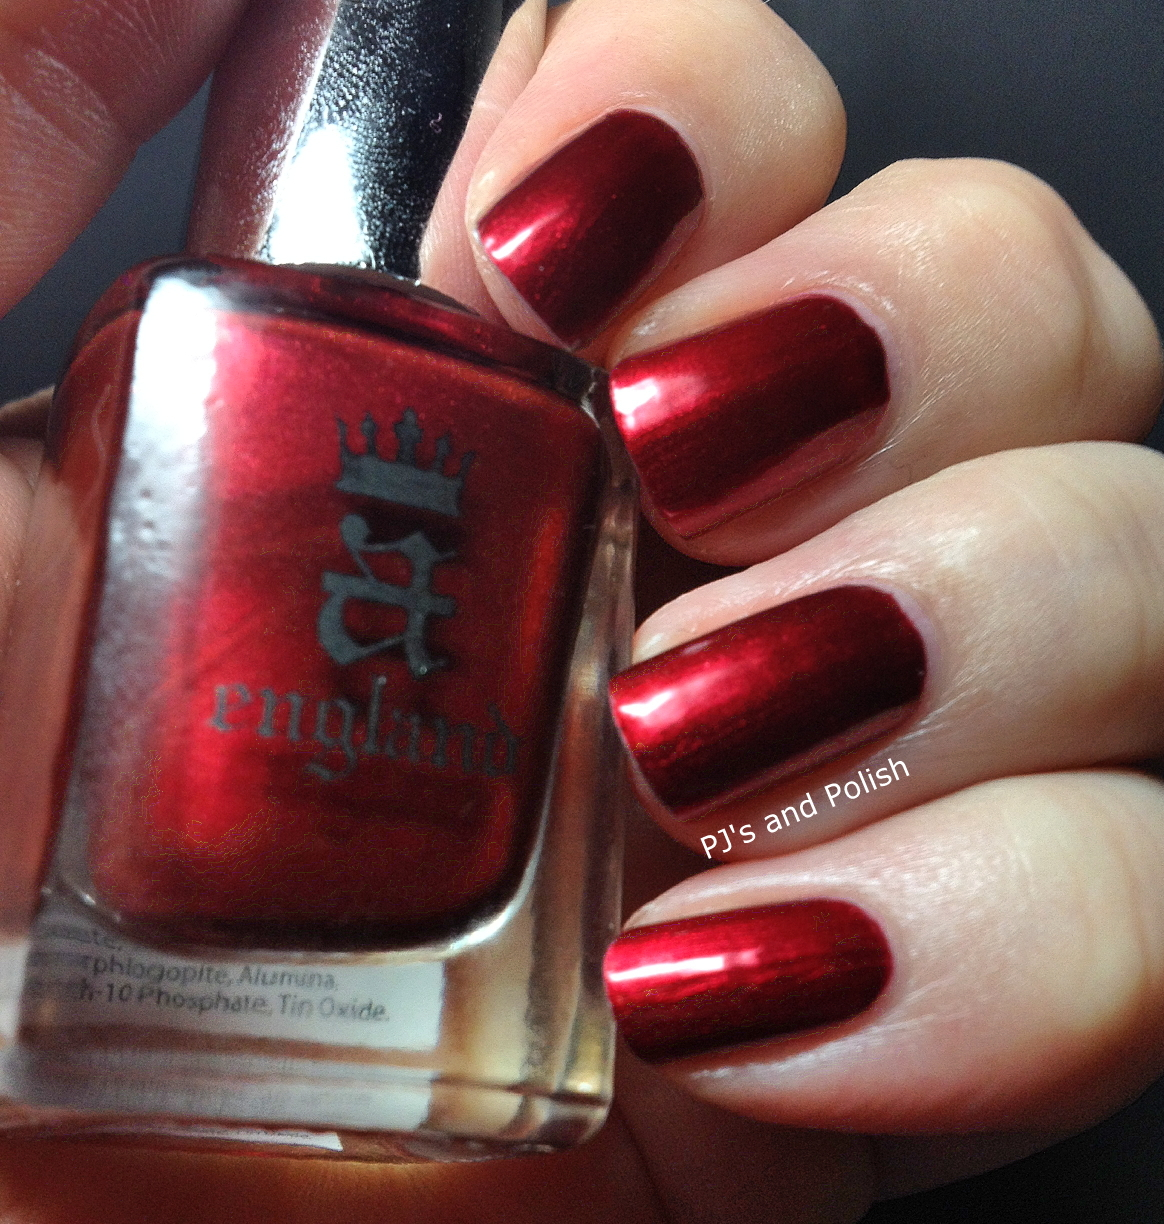 Swatch & Review A England Perceval HK Girl